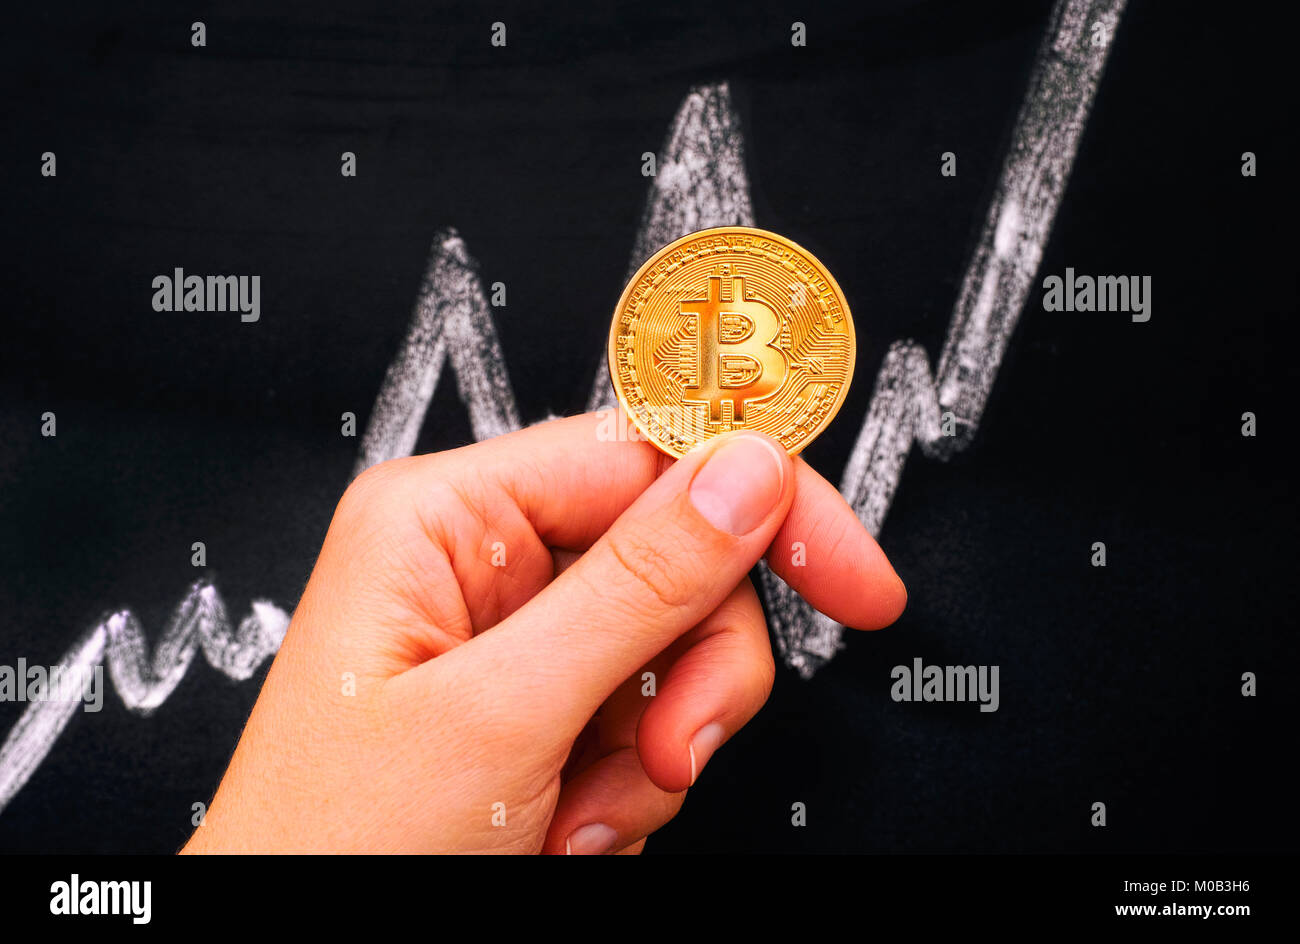 Woman hand holding golden Bitcoin virtual coin against blackboard with chalk drawing graph. - Stock Image